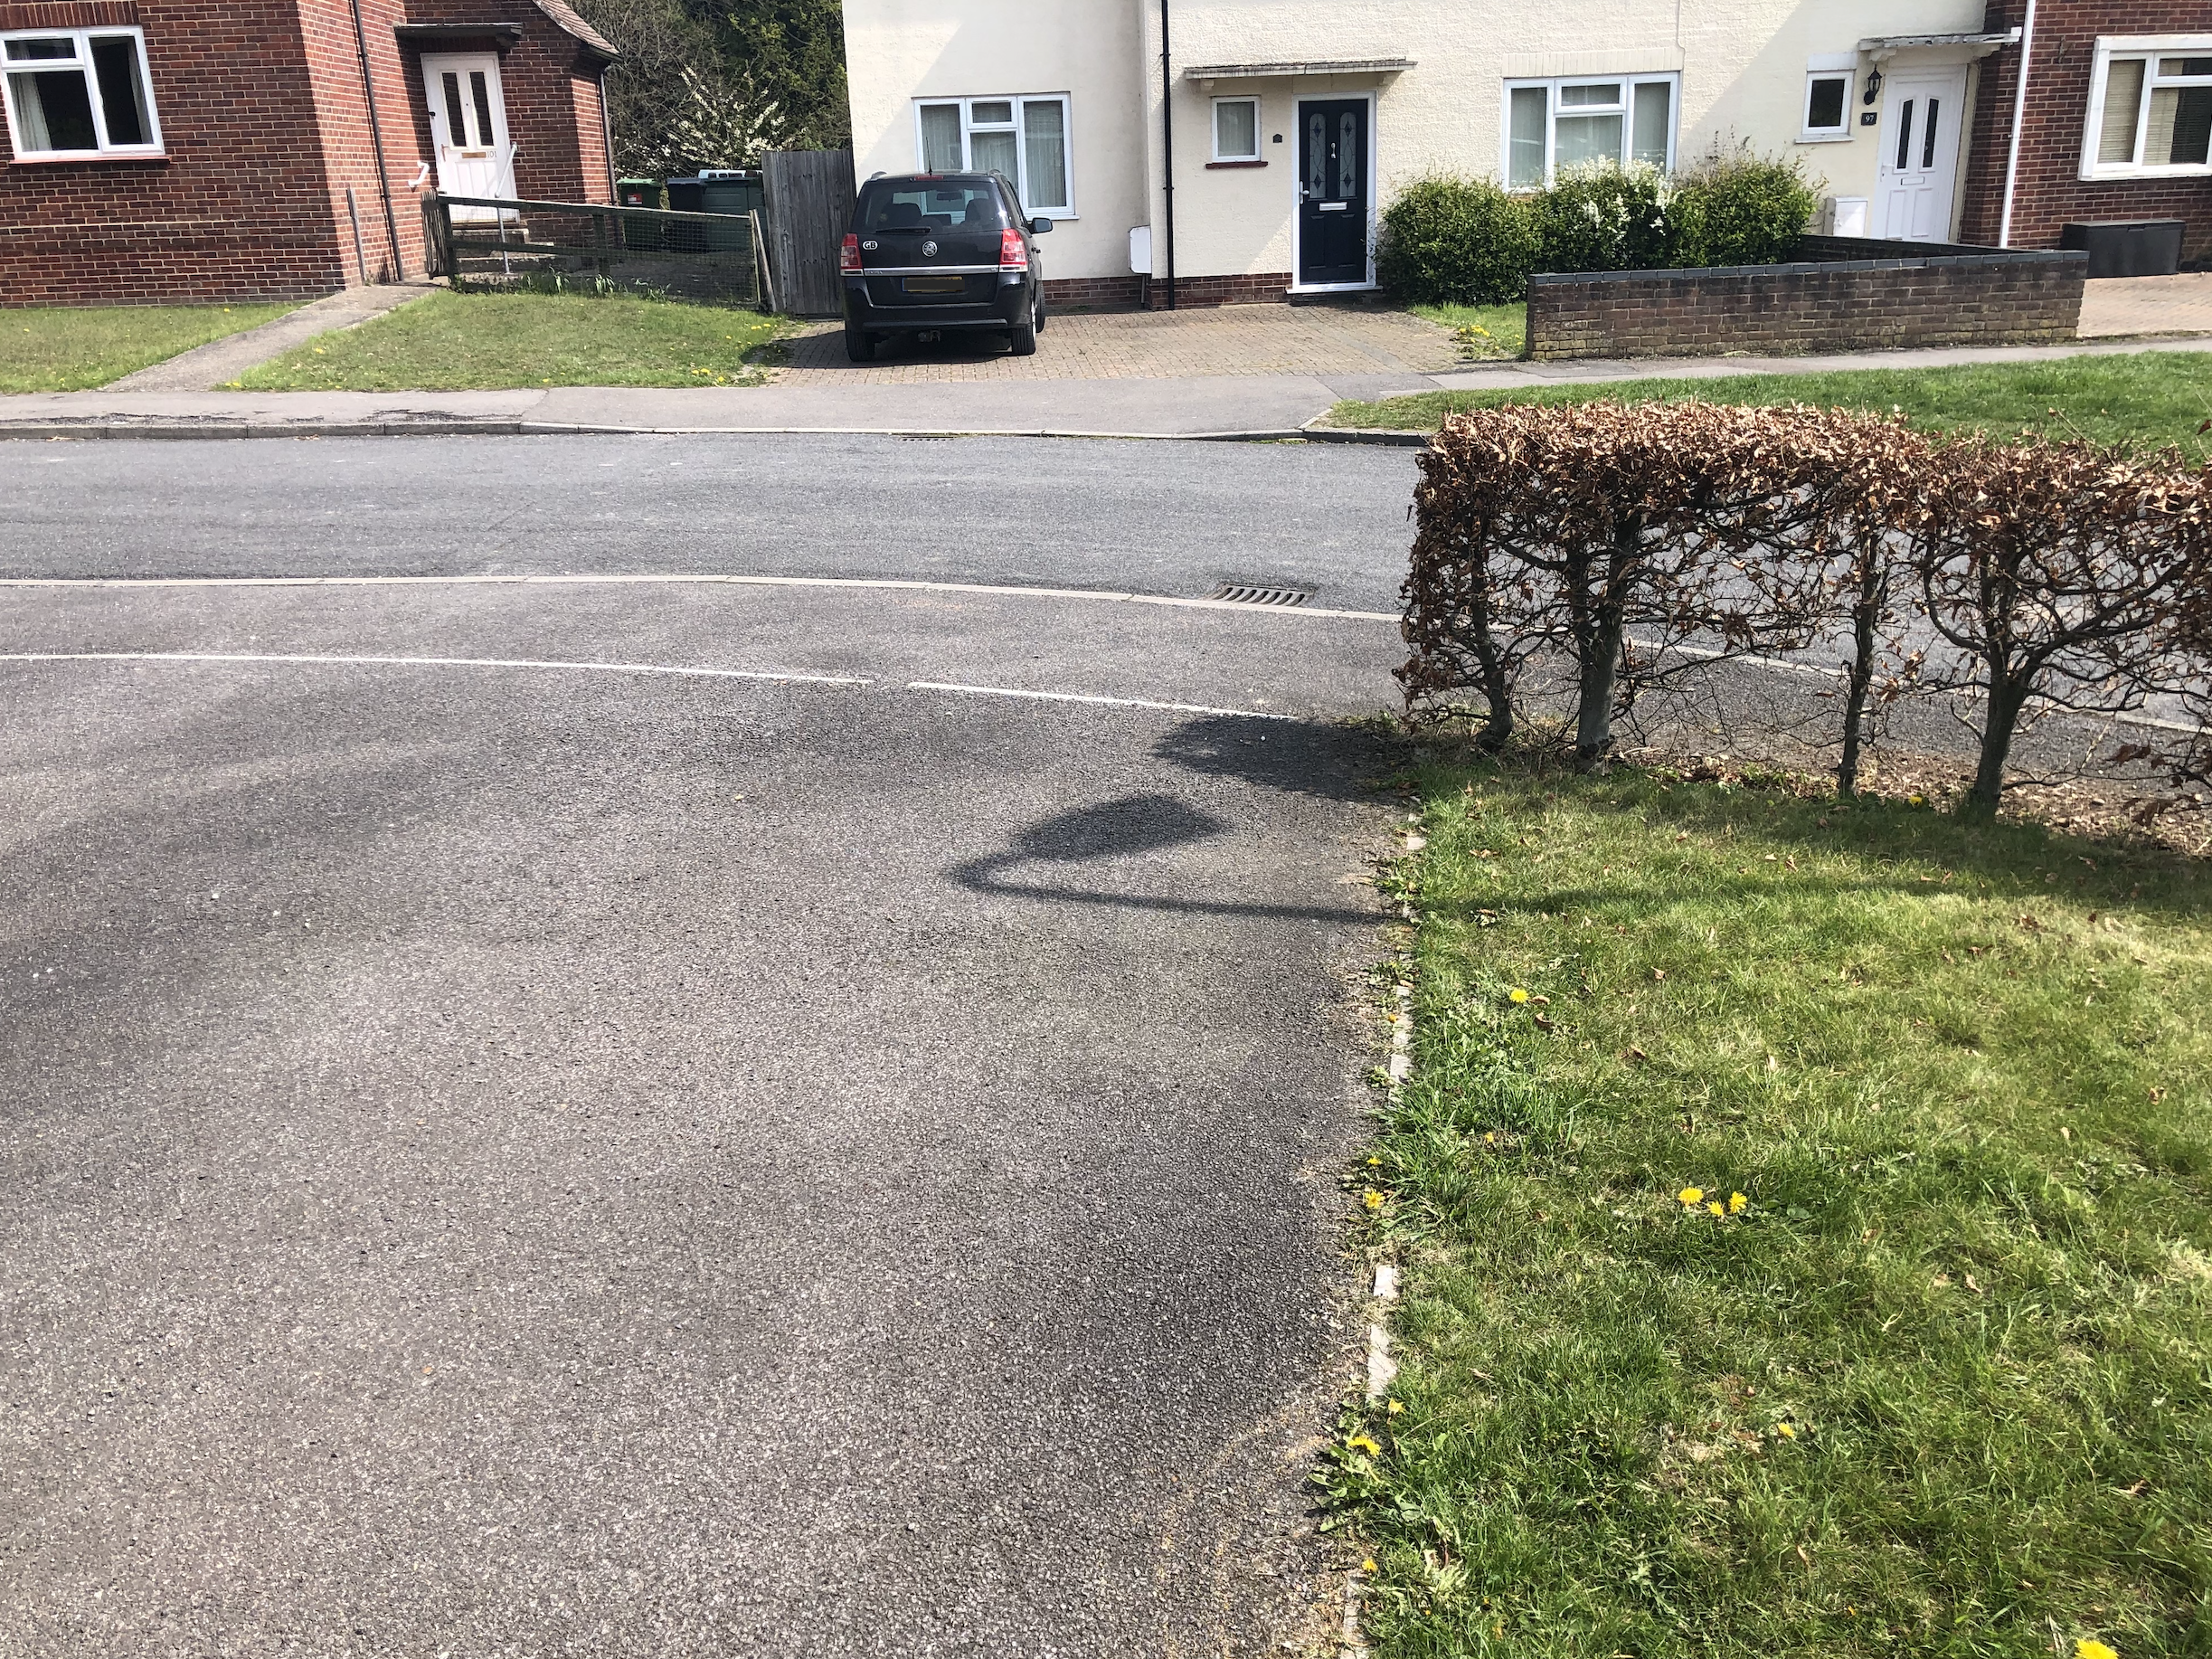 Driveway leading to road